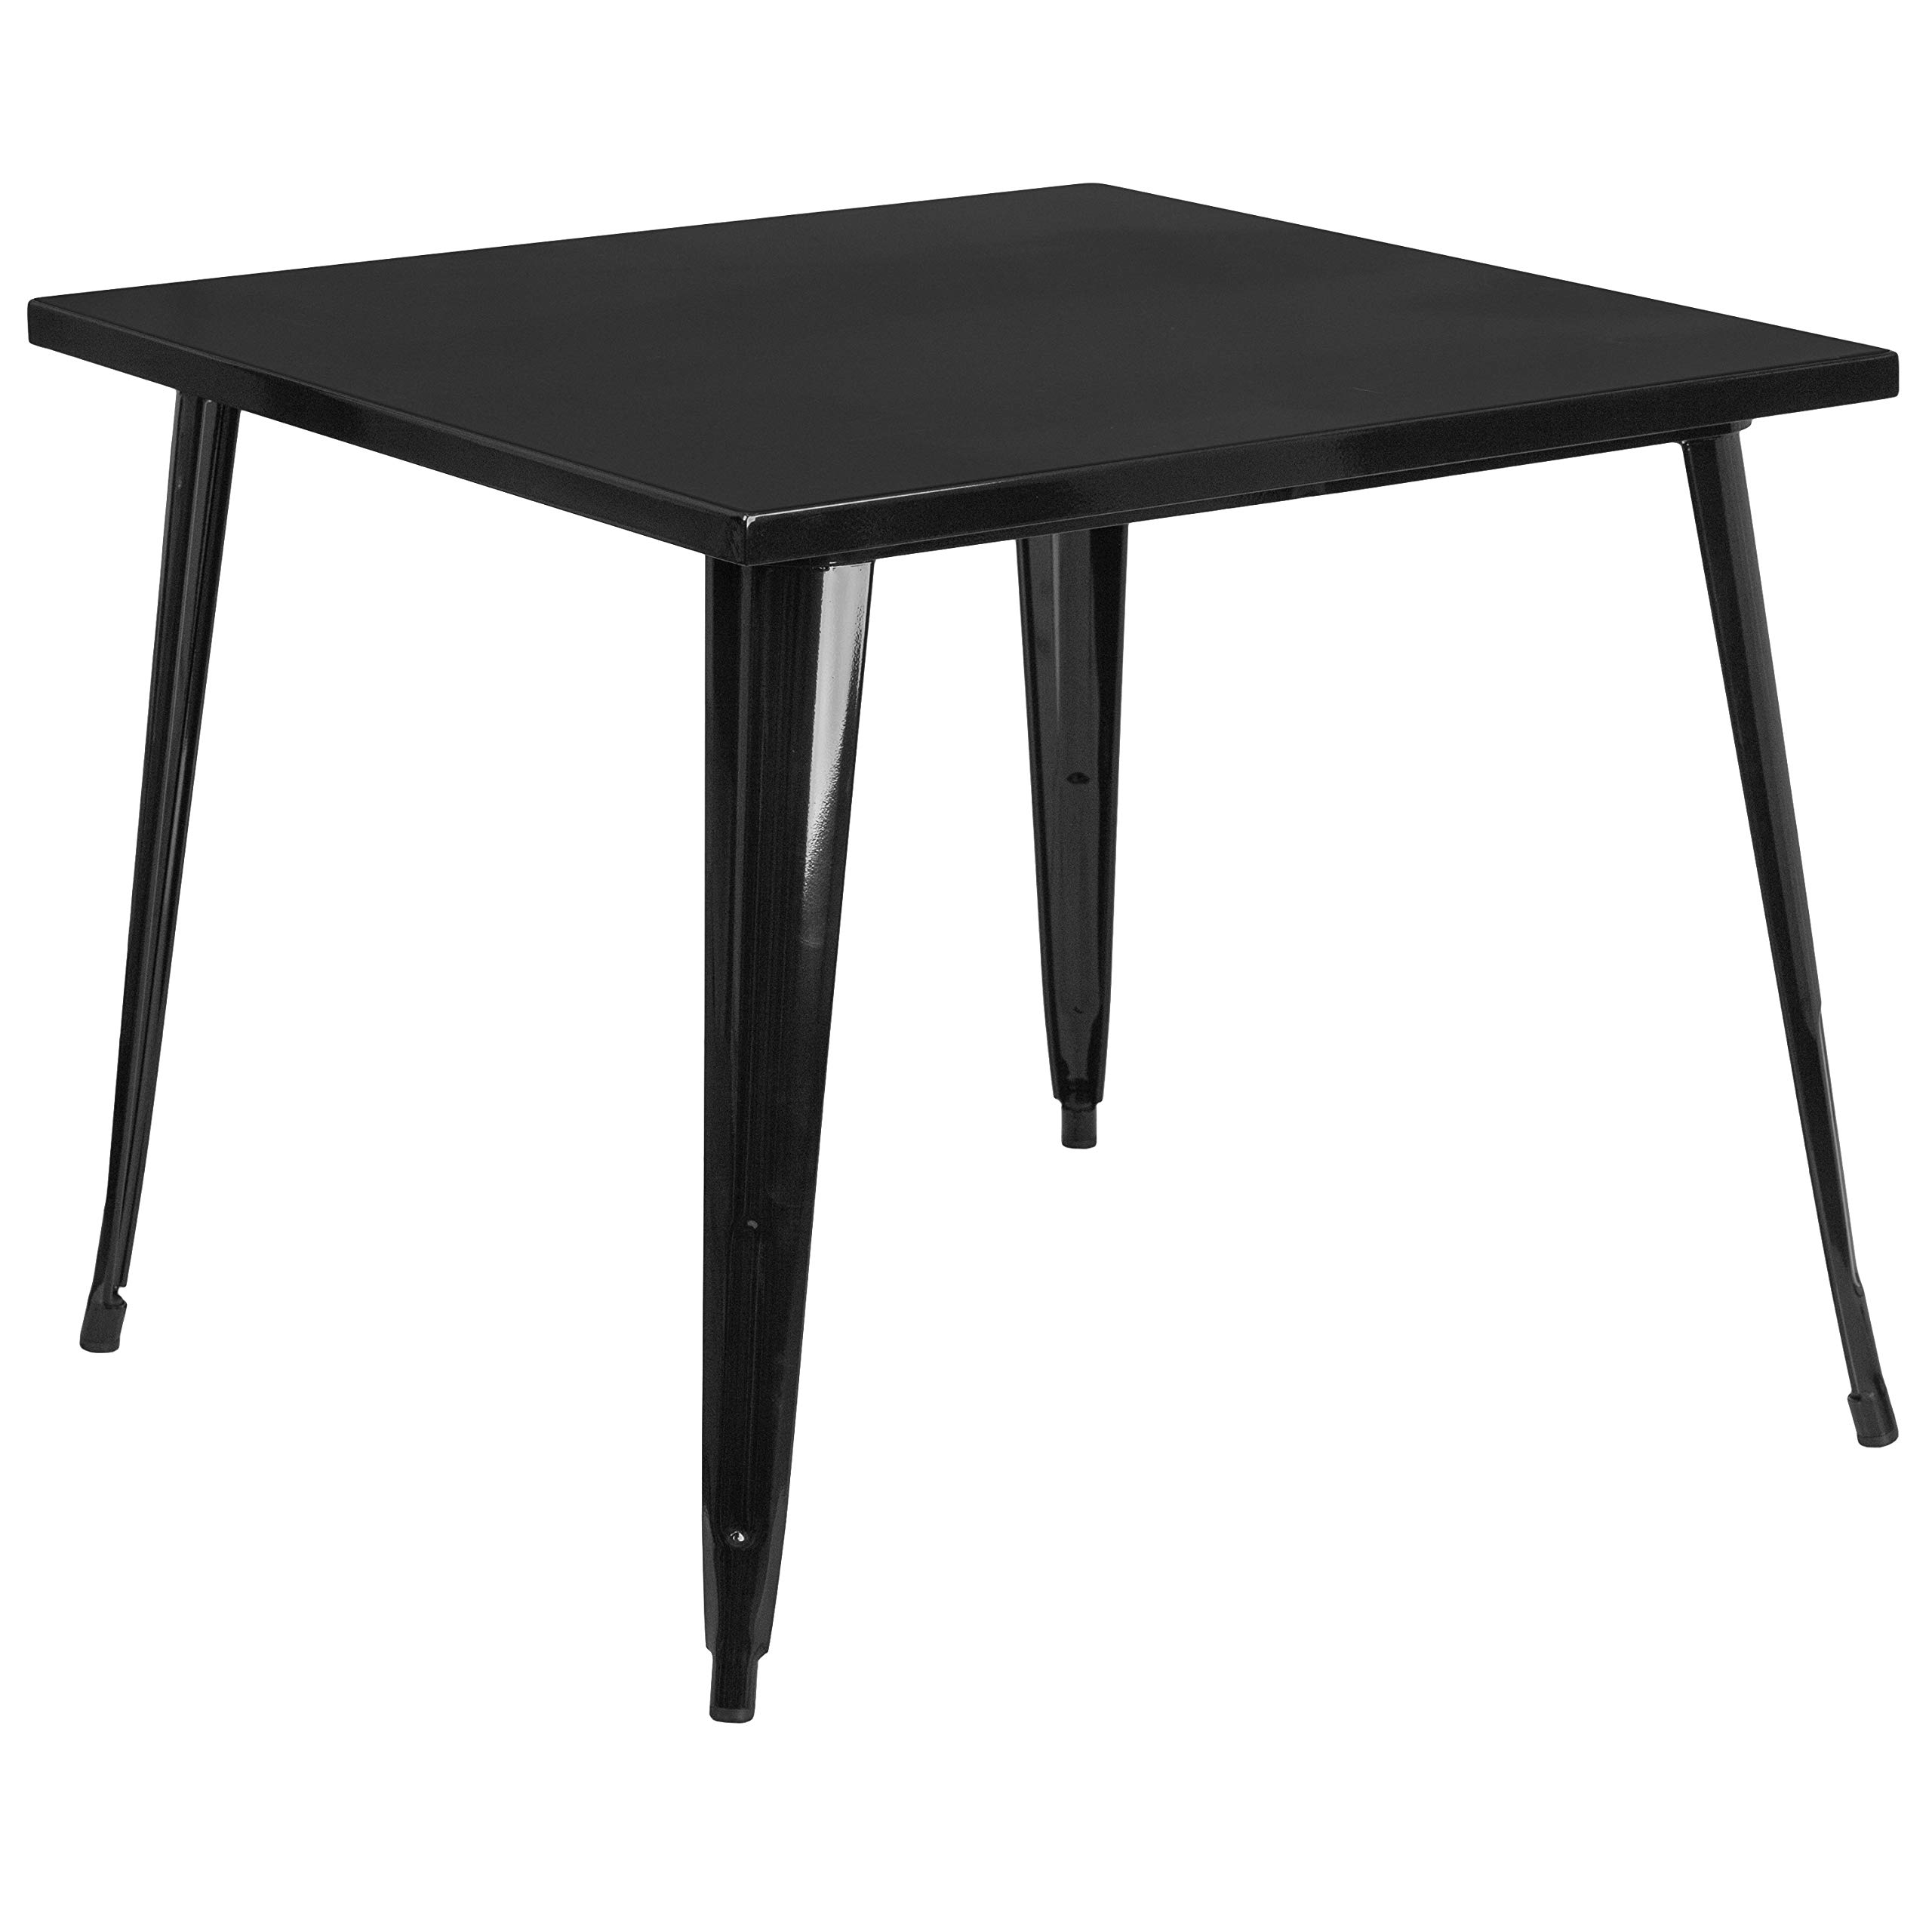 MFO 35.5'' Square Black Metal Indoor-Outdoor Table by My Friendly Office